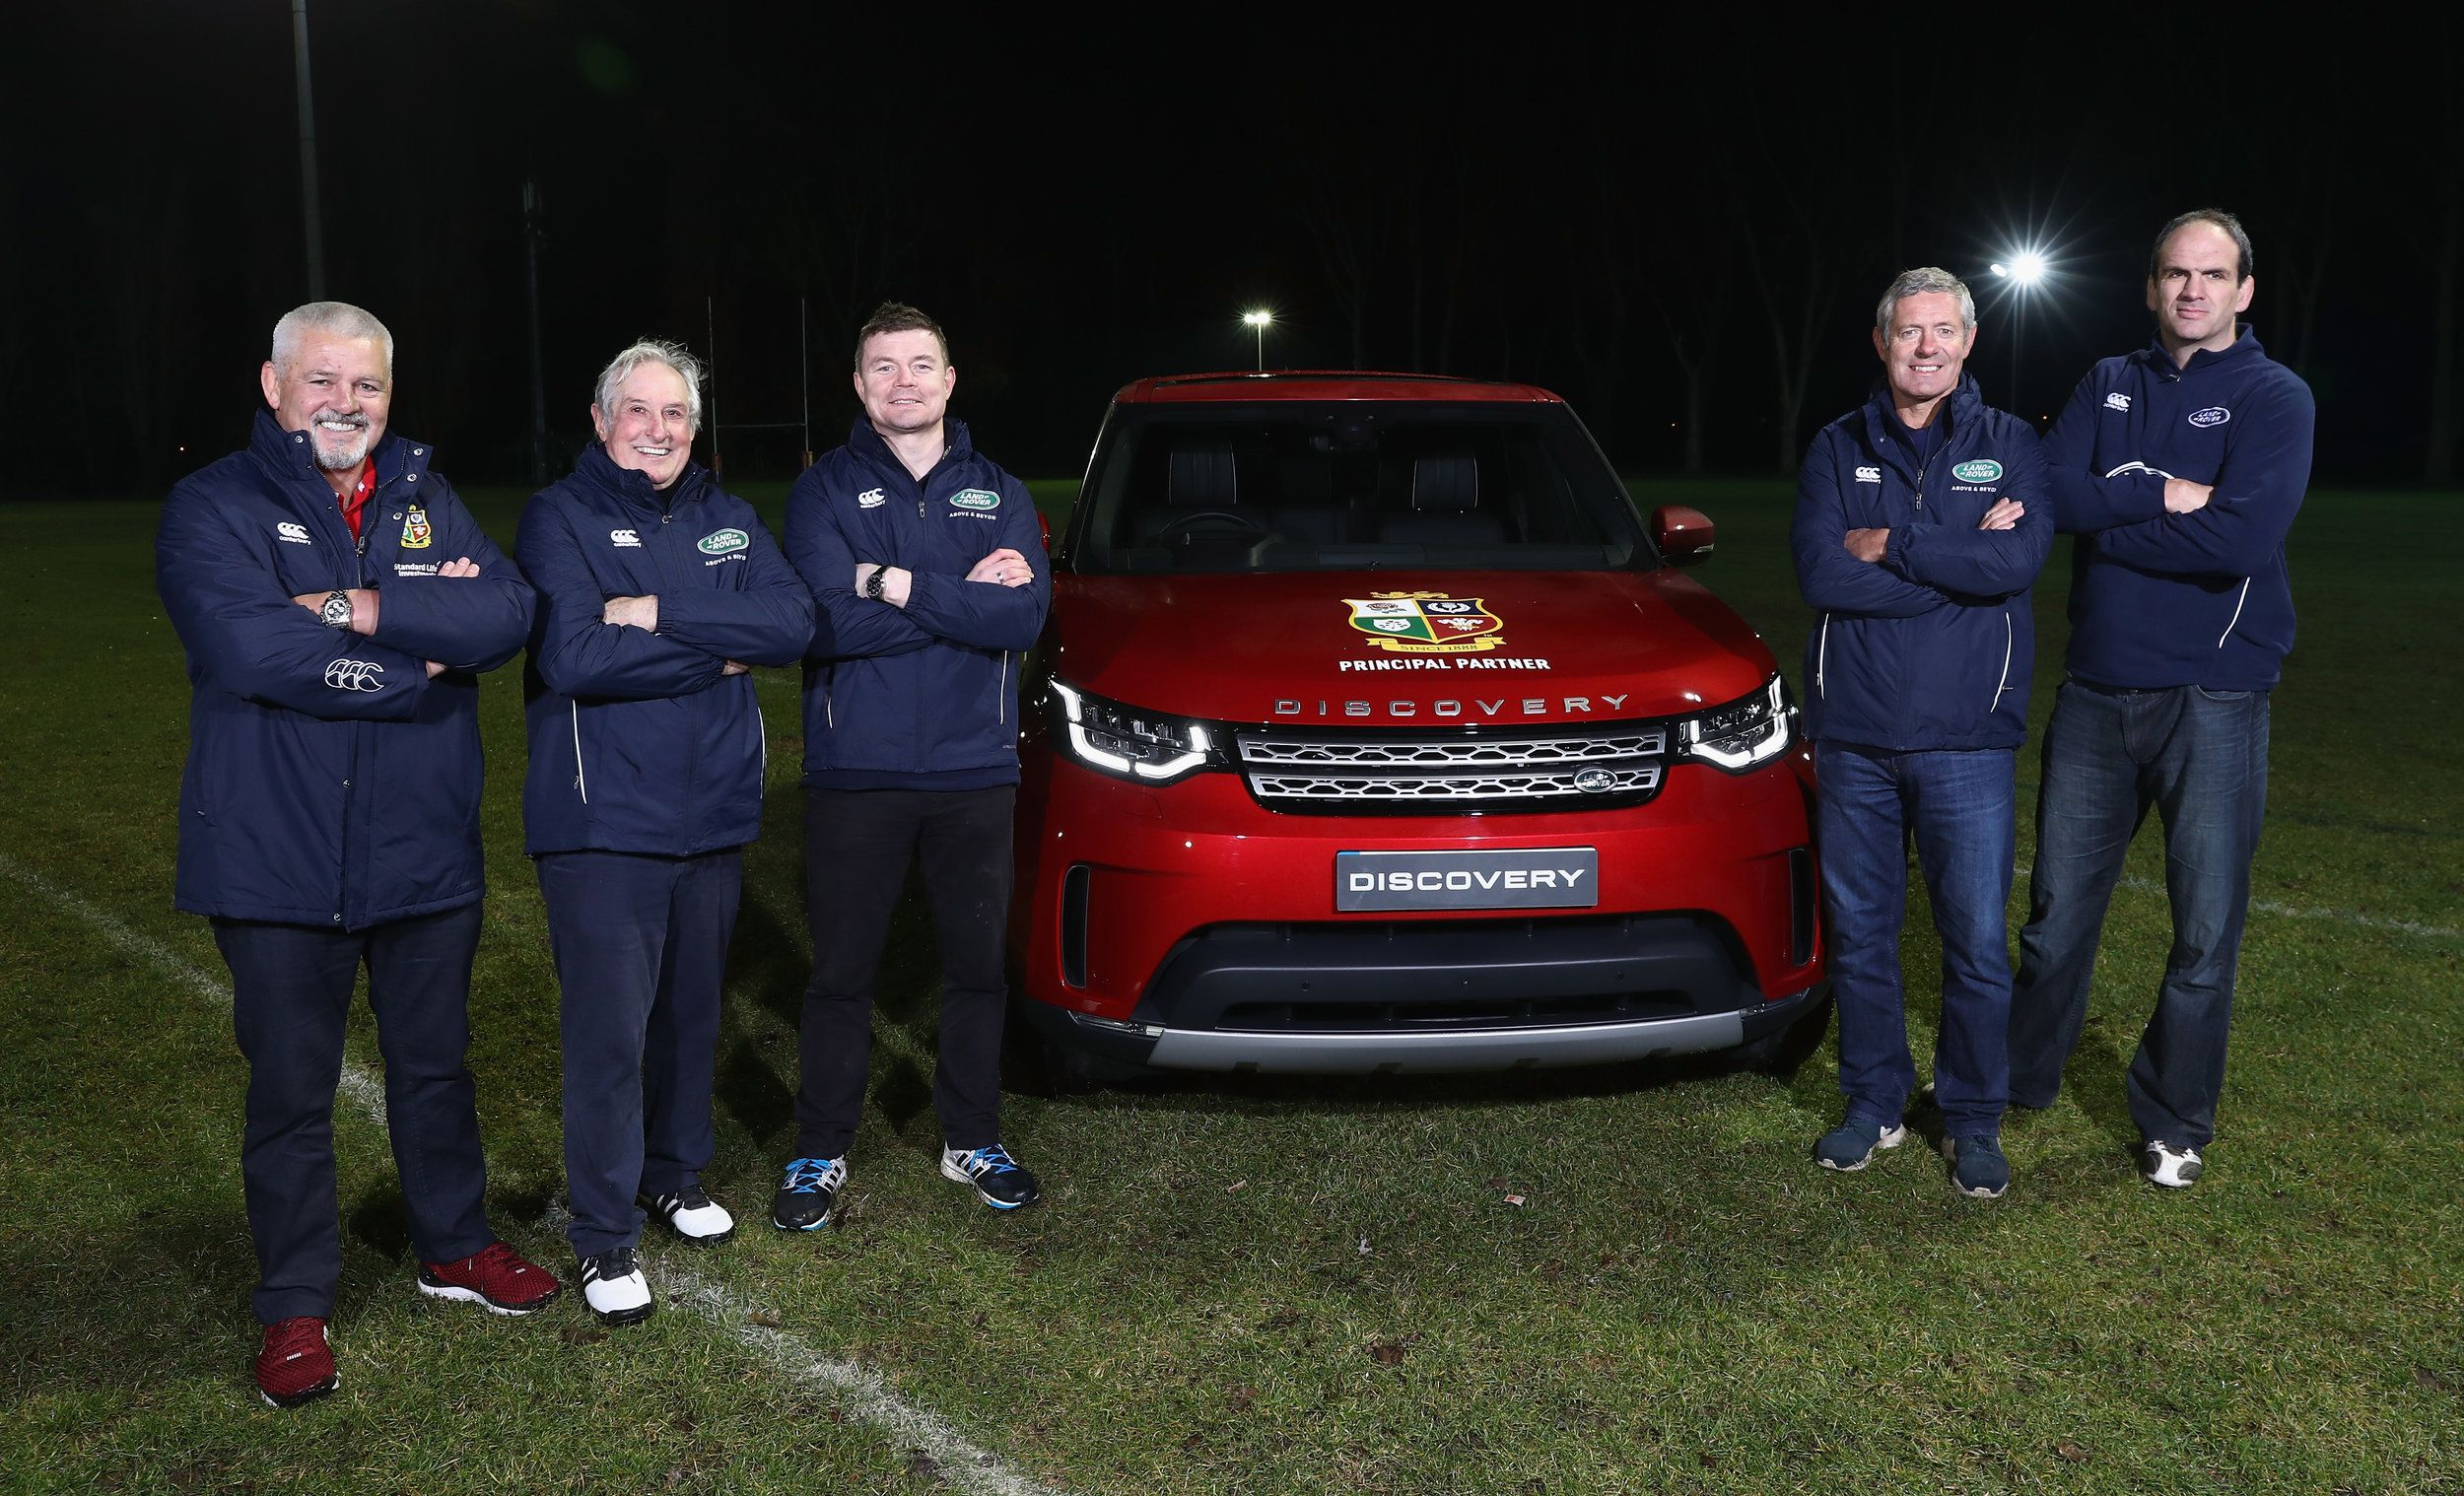 LAND ROVER AND GATLAND ON THE HUNT FOR GRASSROOTS LIONS FANS